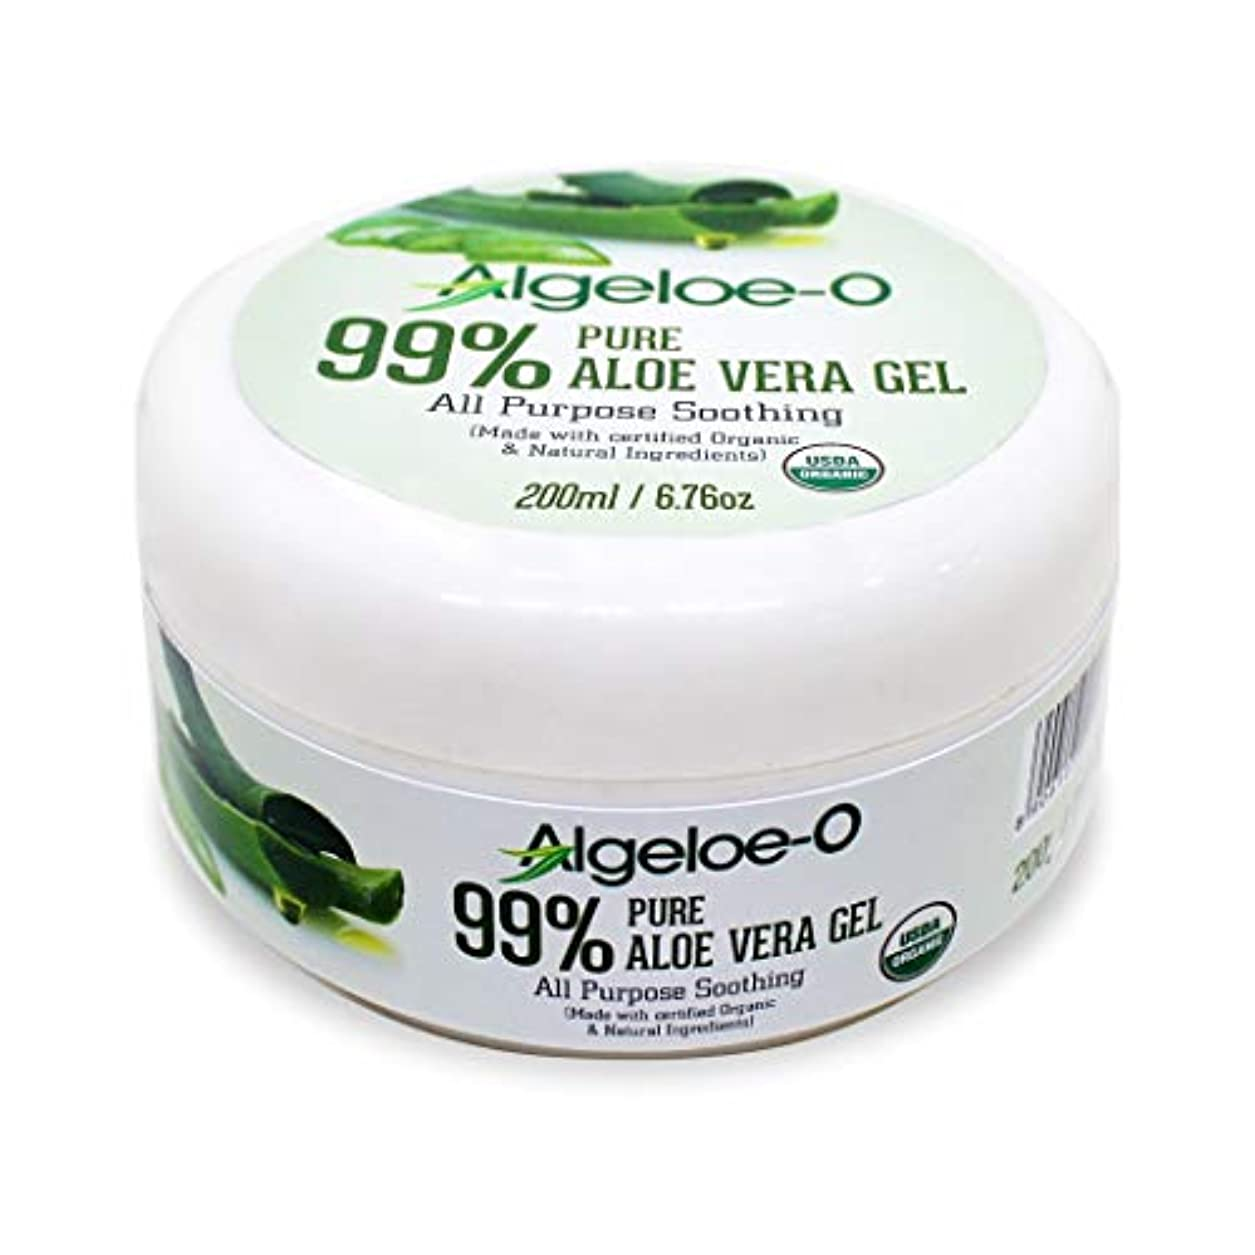 三角涙が出る貫通するAlgeloe-O  Organic Aloe Vera Gel 99% Pure Natural made with USDA Certified Aloe Vera Powder Paraben, sulfate free with no added color 200ml/6.76oz.